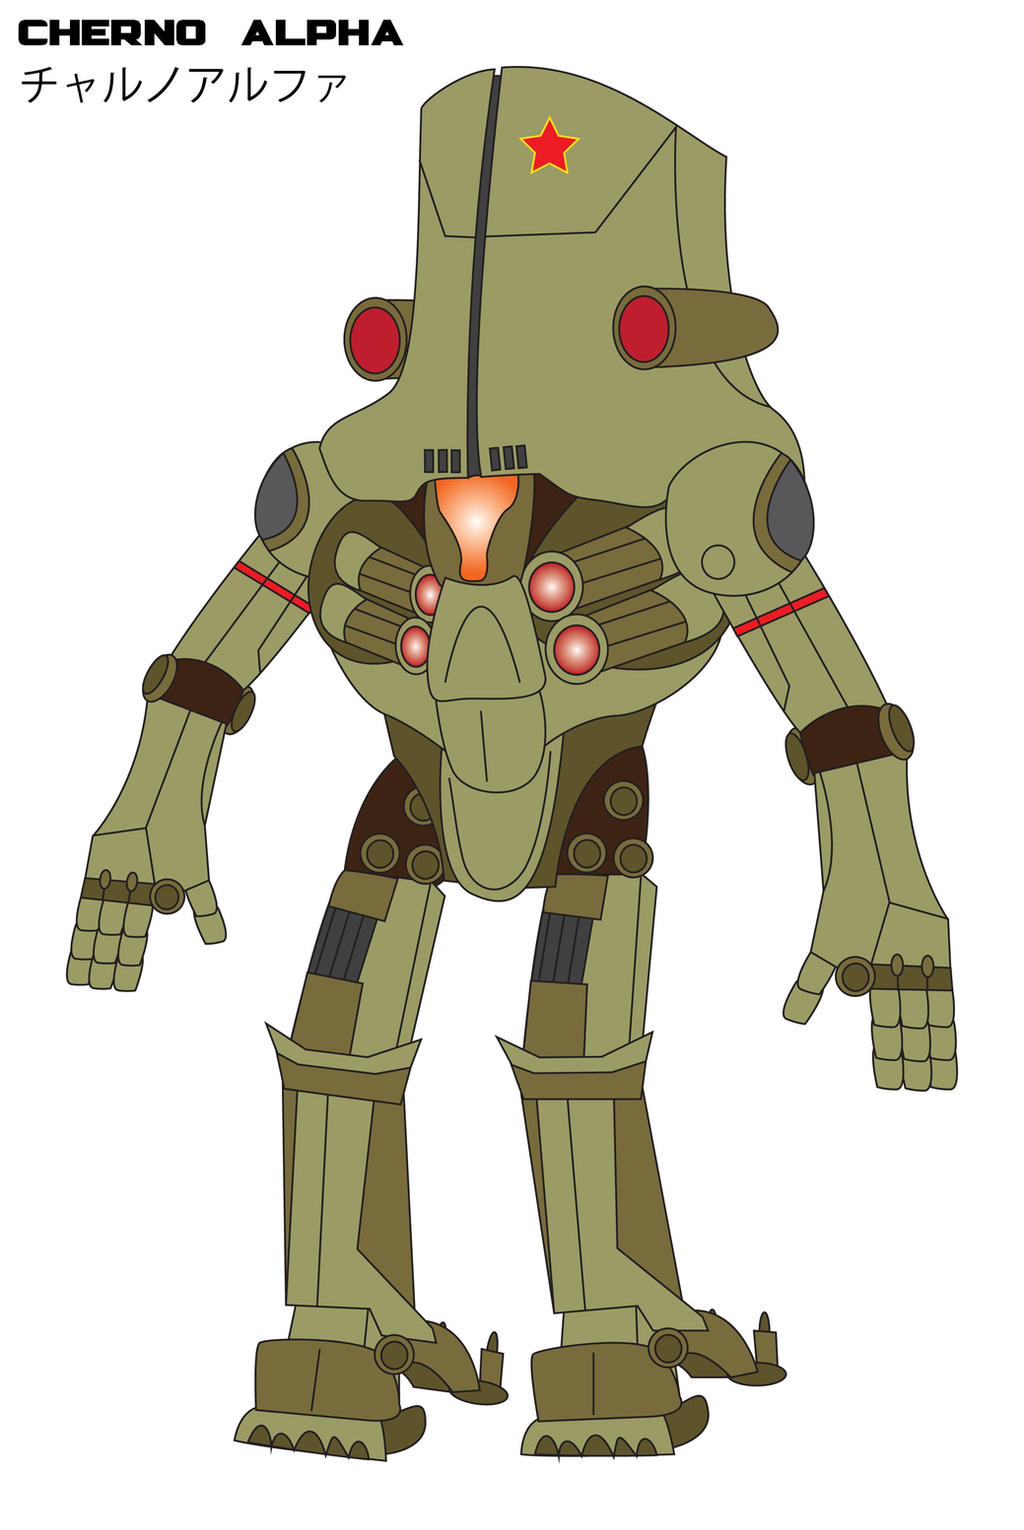 The Pacific Rim - CHERNO ALPHA by Daizua123 on DeviantArt Pacific Rim Cherno Alpha Anime